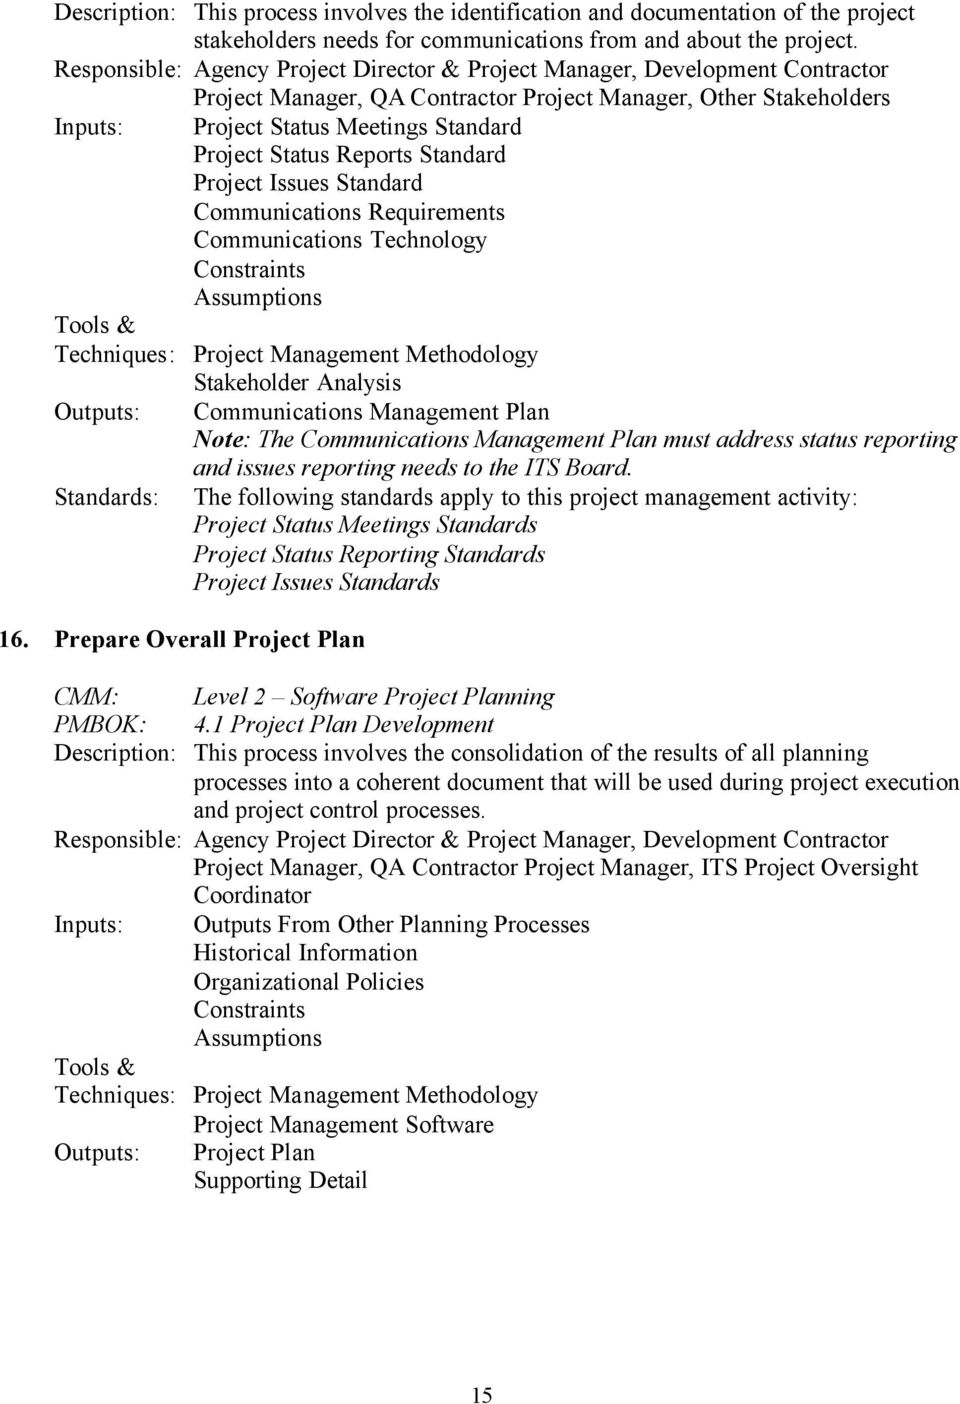 Status Reports Standard Project Issues Standard Communications Requirements Communications Technology Constraints Assumptions Techniques: Project Management Methodology Stakeholder Analysis Outputs: